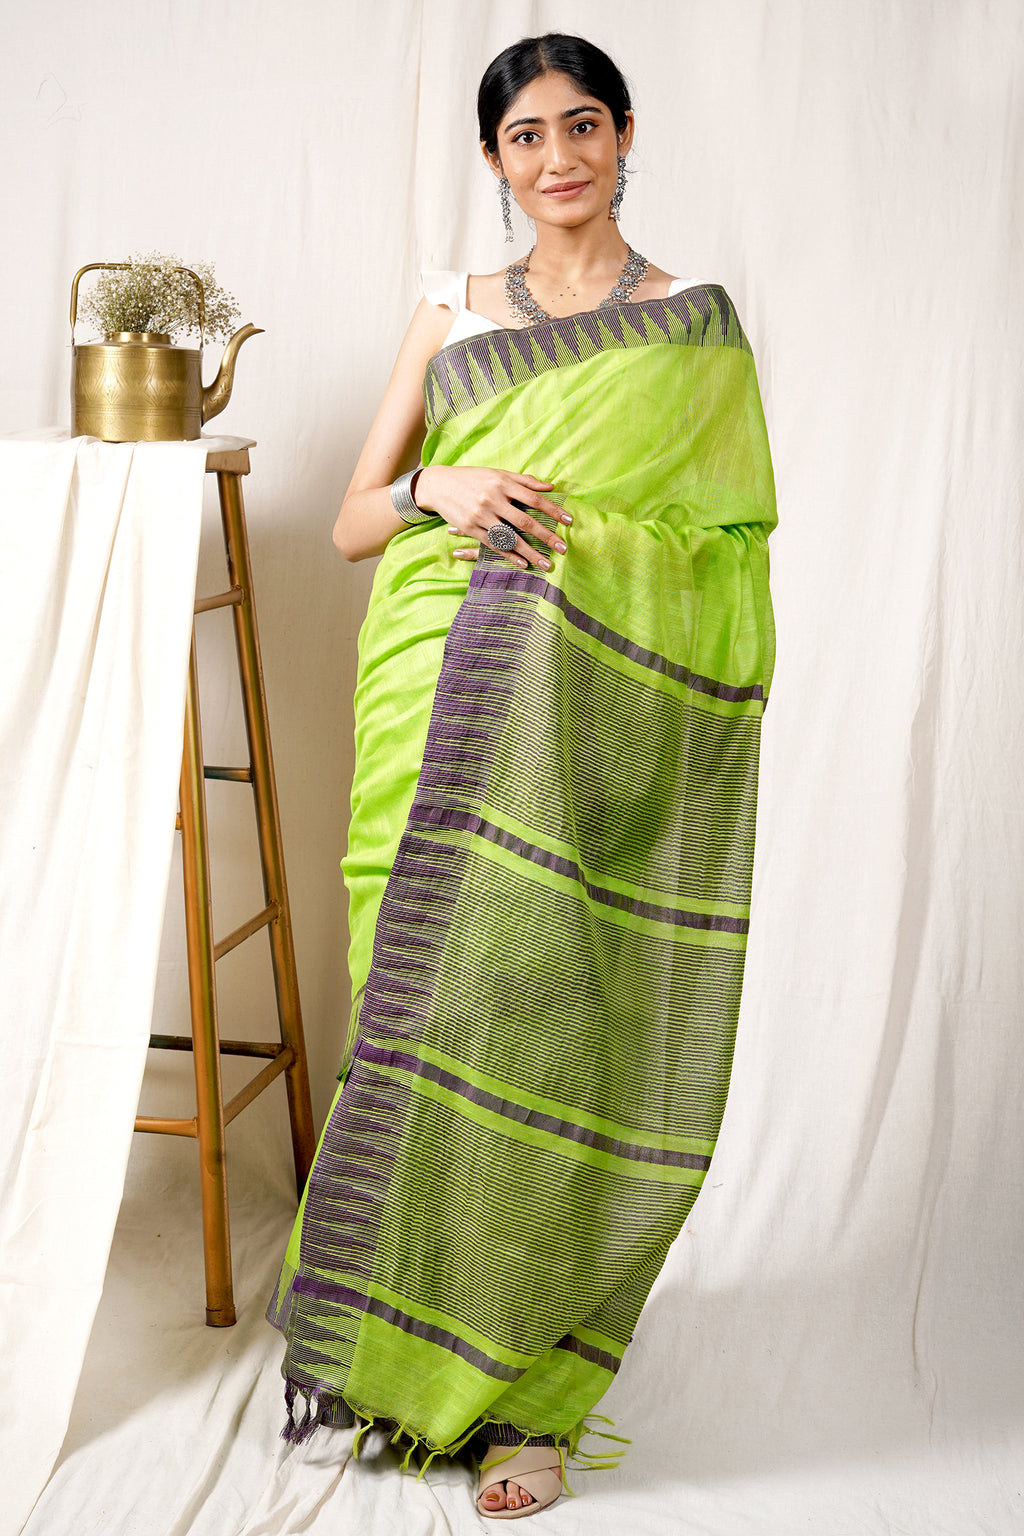 Teejh Paradise Green Kota Temple Work Saree